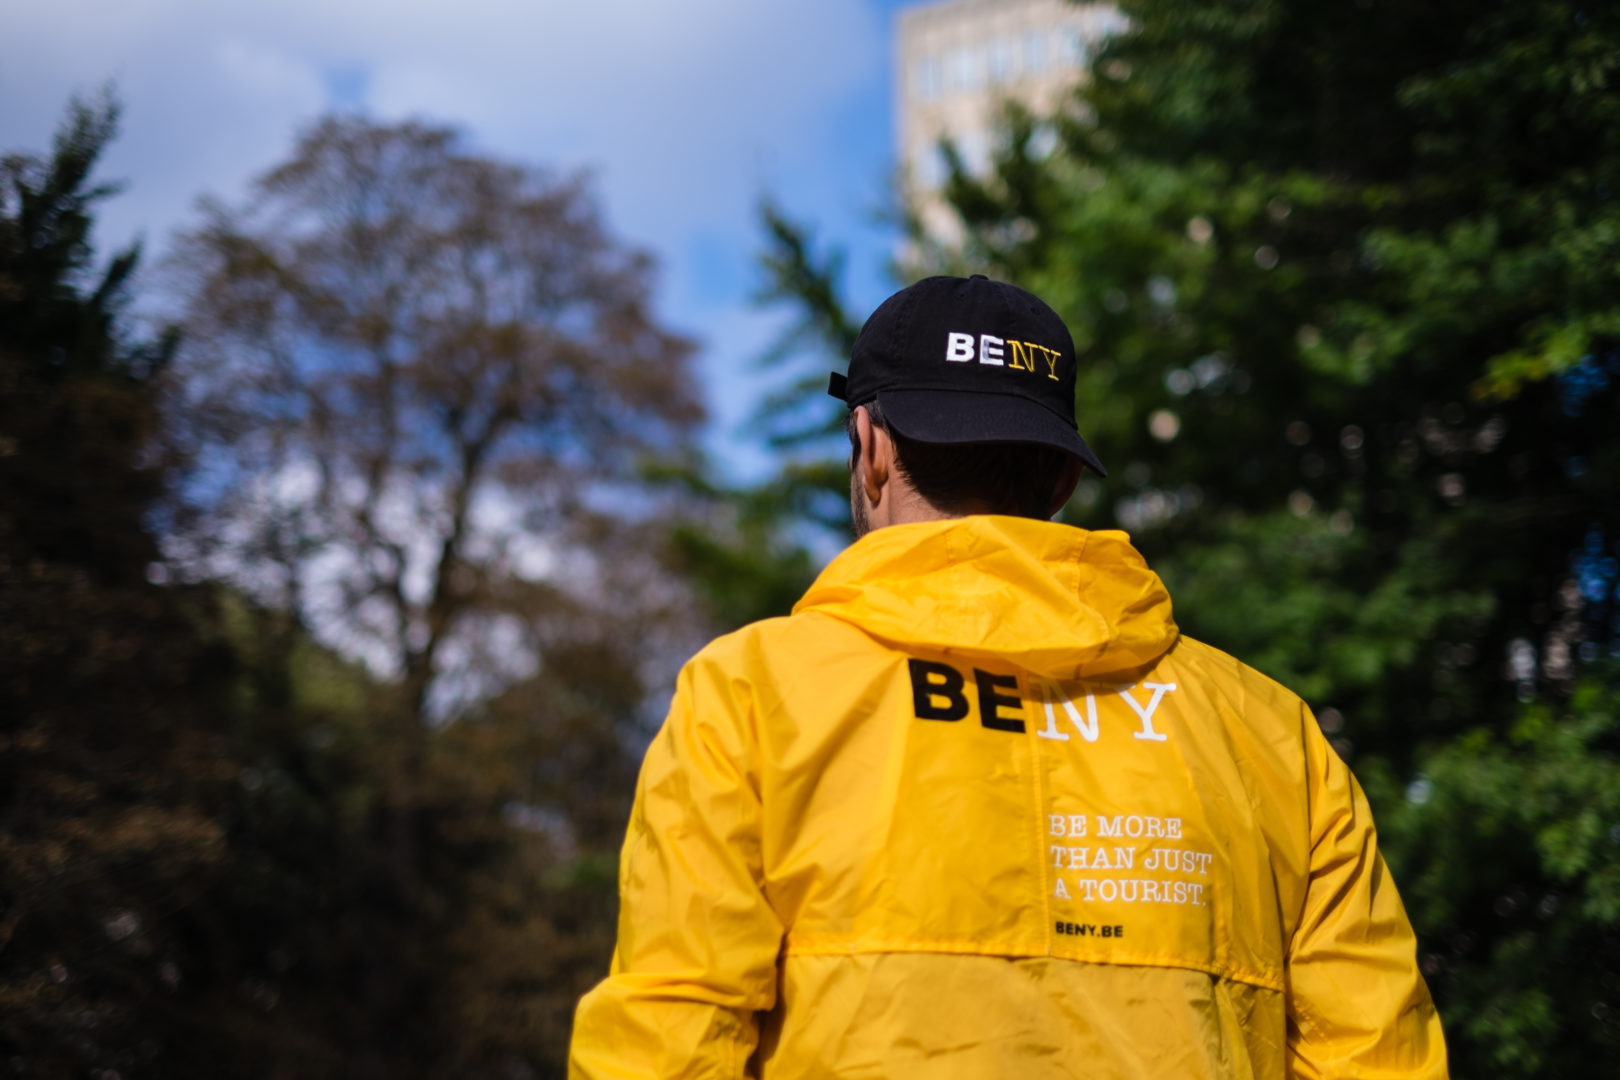 Man with a BENY cap and raincoat